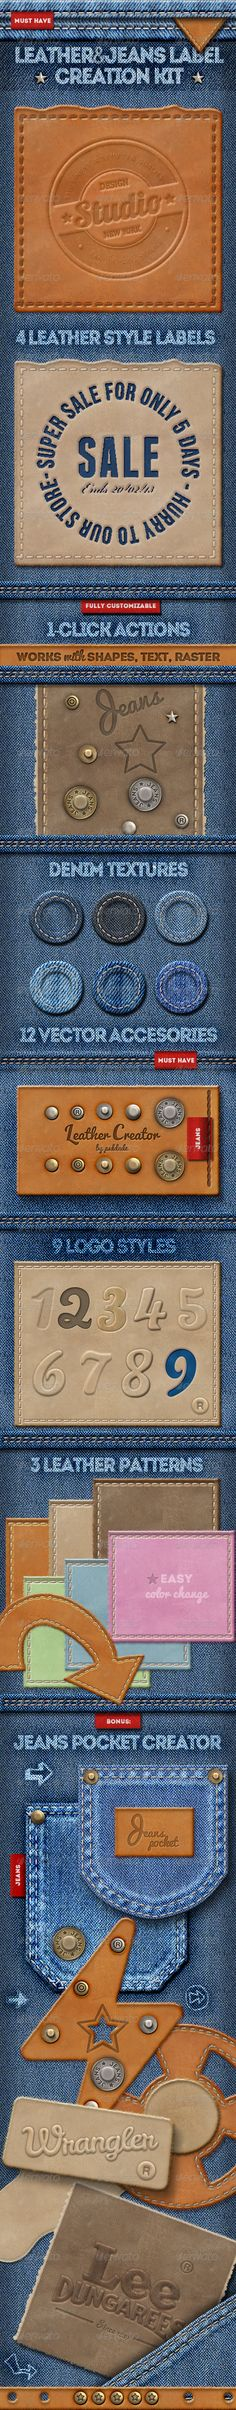 Embroidery and Stitching Photoshop Creation Kit | GraphicRiver